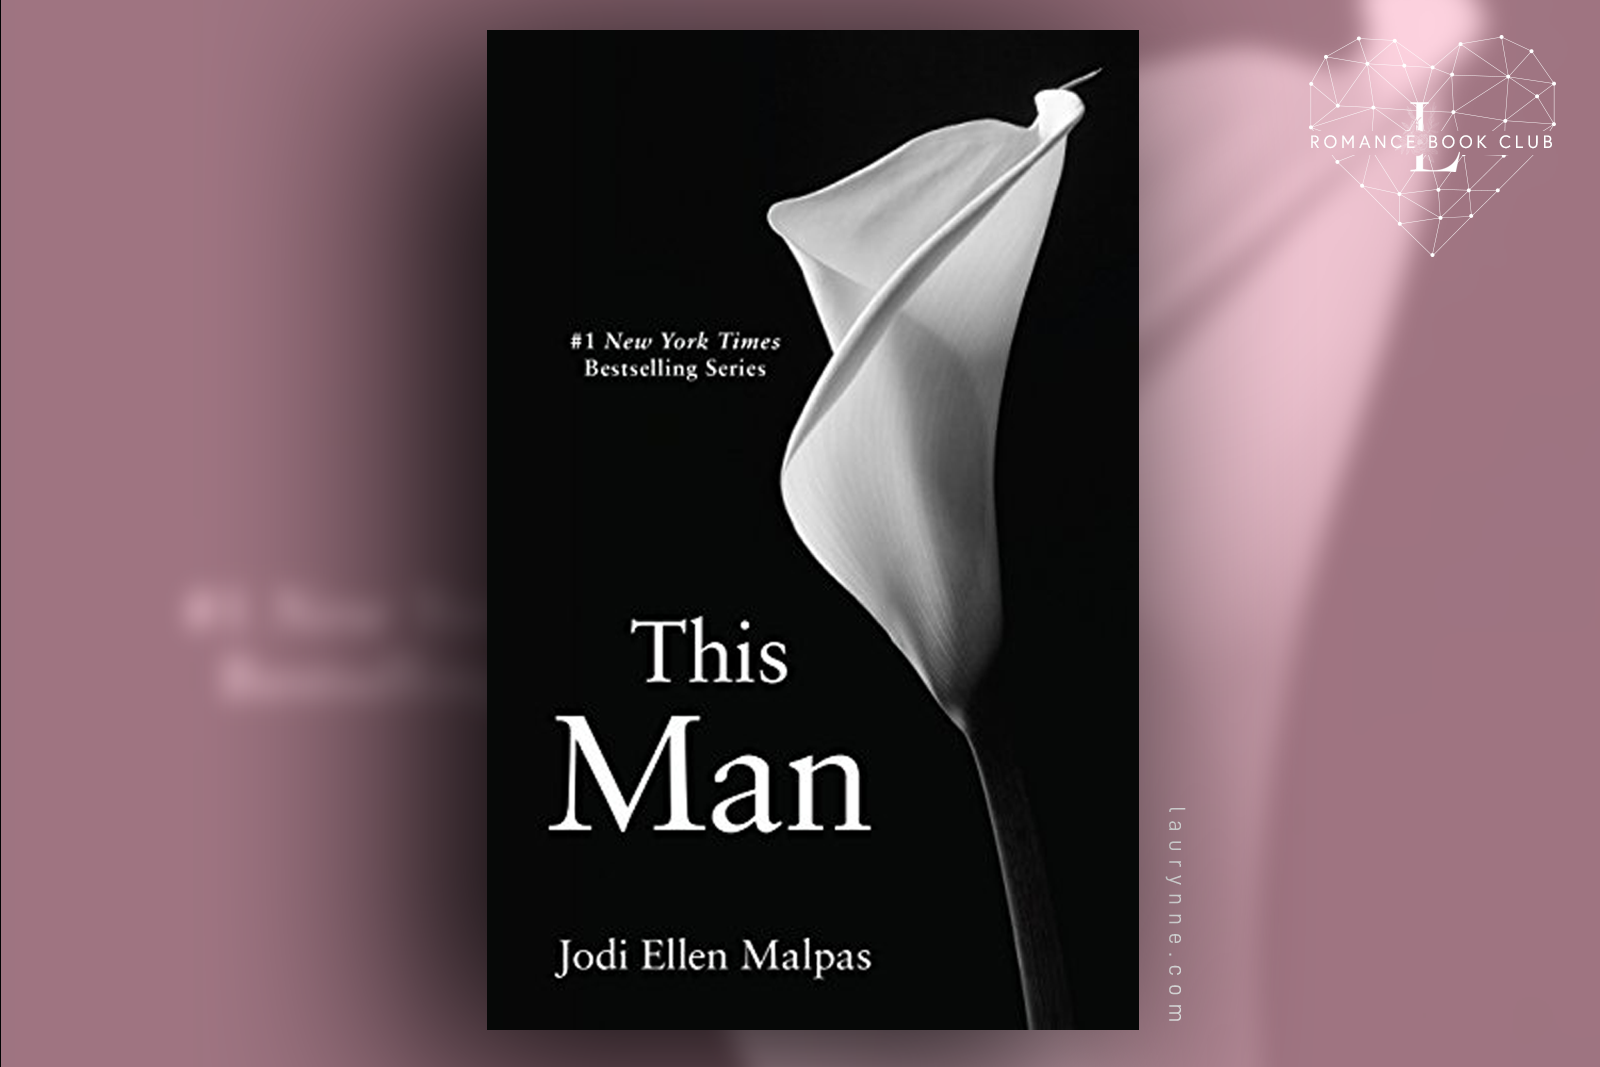 Book Review - This Man (This Man #1) by Jodi Ellen Malpas